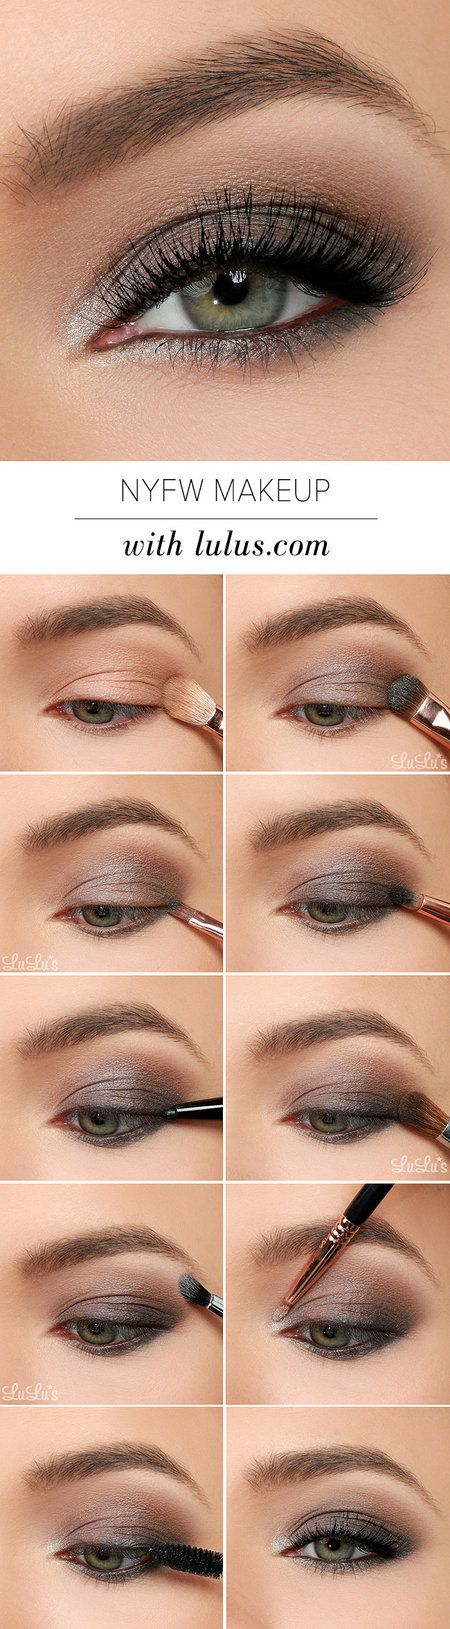 How-To: 2015 NYFW Inspired Eye Shadow Tutorial - #eyemakeup #eyetutorial #lulus